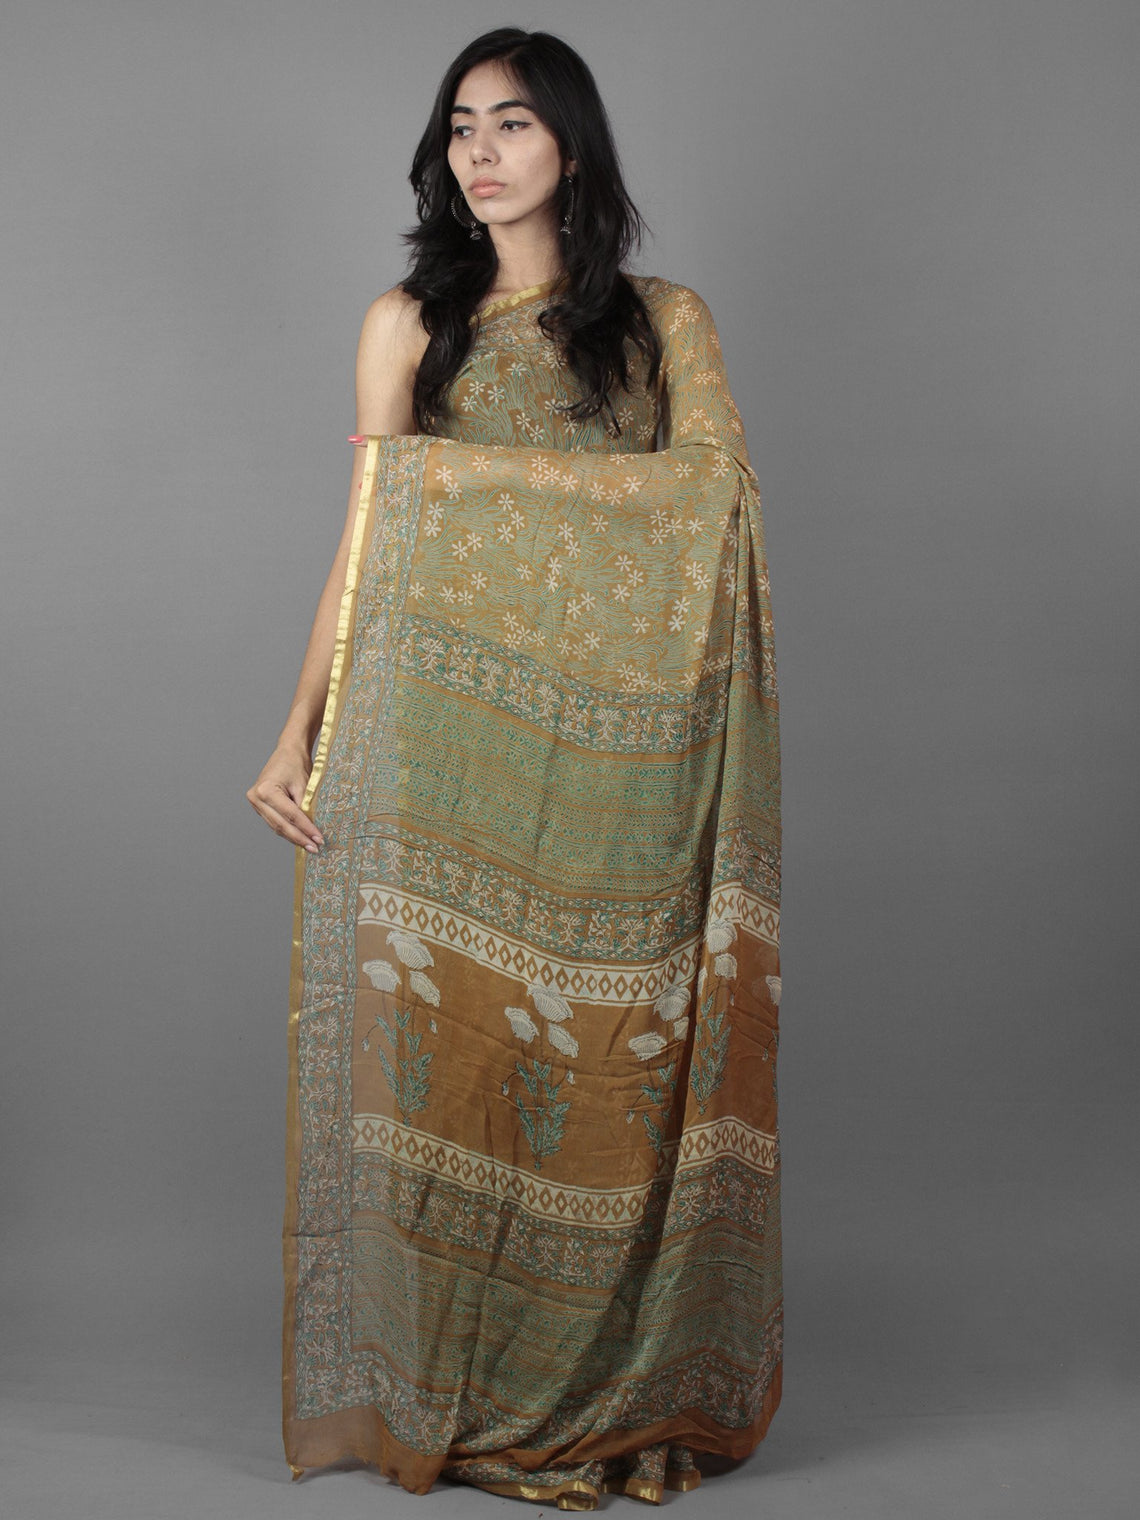 Peanut Brown Teal Green Ivory Hand Block Printed Chiffon Saree - S031701896